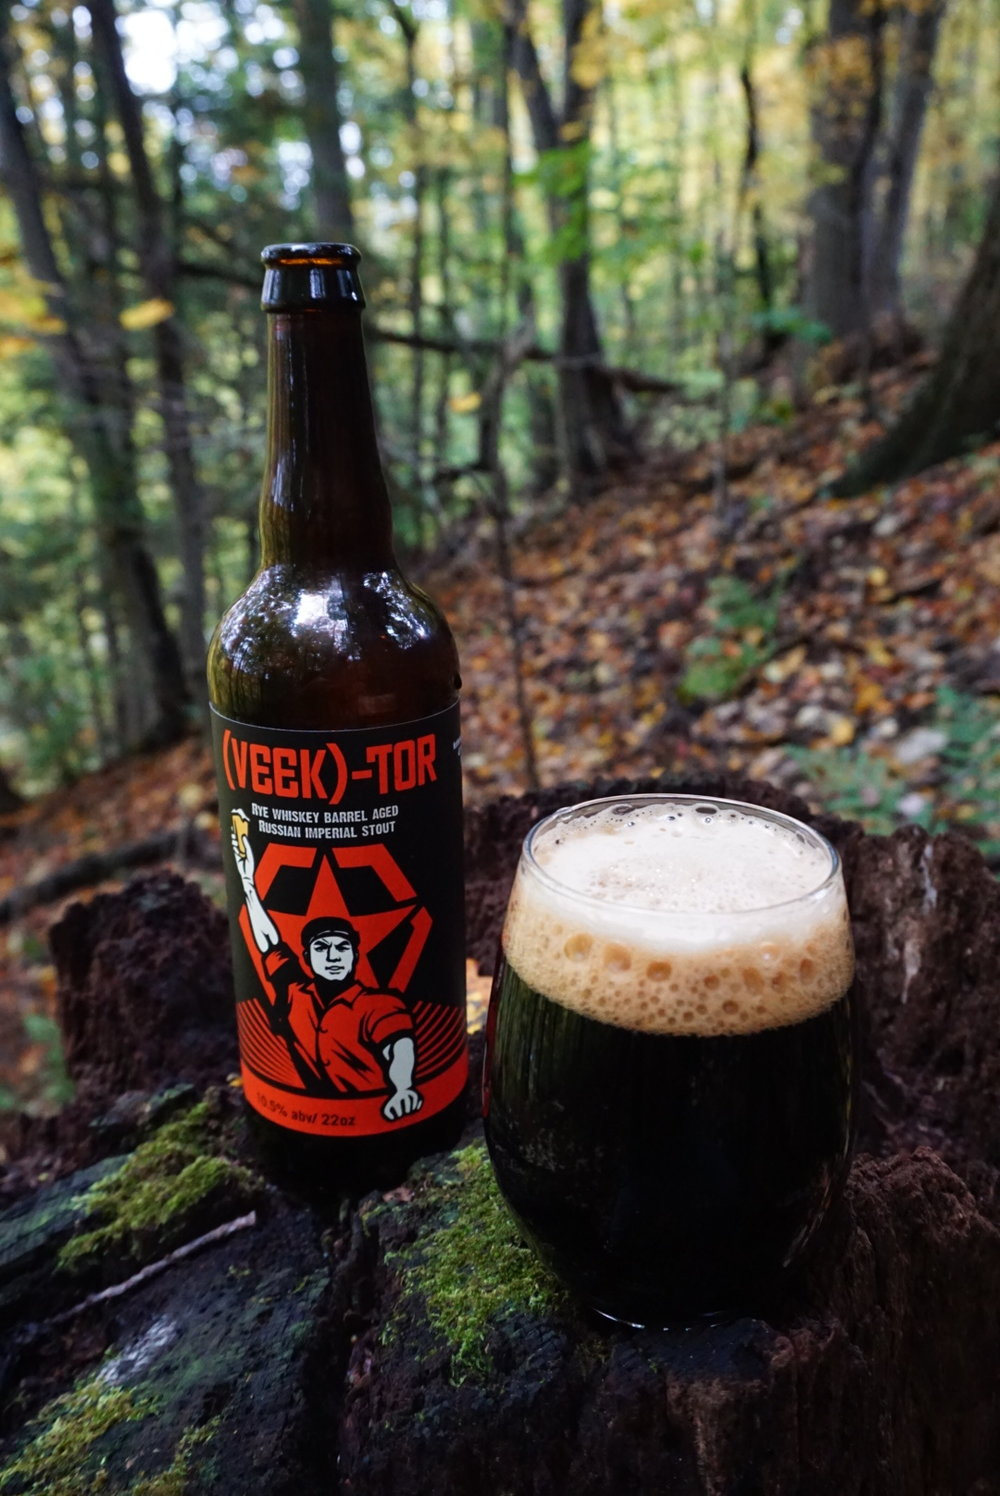 (VEEK)TOR Russian Imperial Stout, 10.5 % ABV - 22 oz bottle, aged 9 months in rye whiskey barrels. 10.5% alcohol, huge rye whiskey, caramel and dark chocolate on the nose. Flavors of carmelized sugar, roasty malts, raisins, dried figs, oak. Followed by a spicy rye whisky warmth.